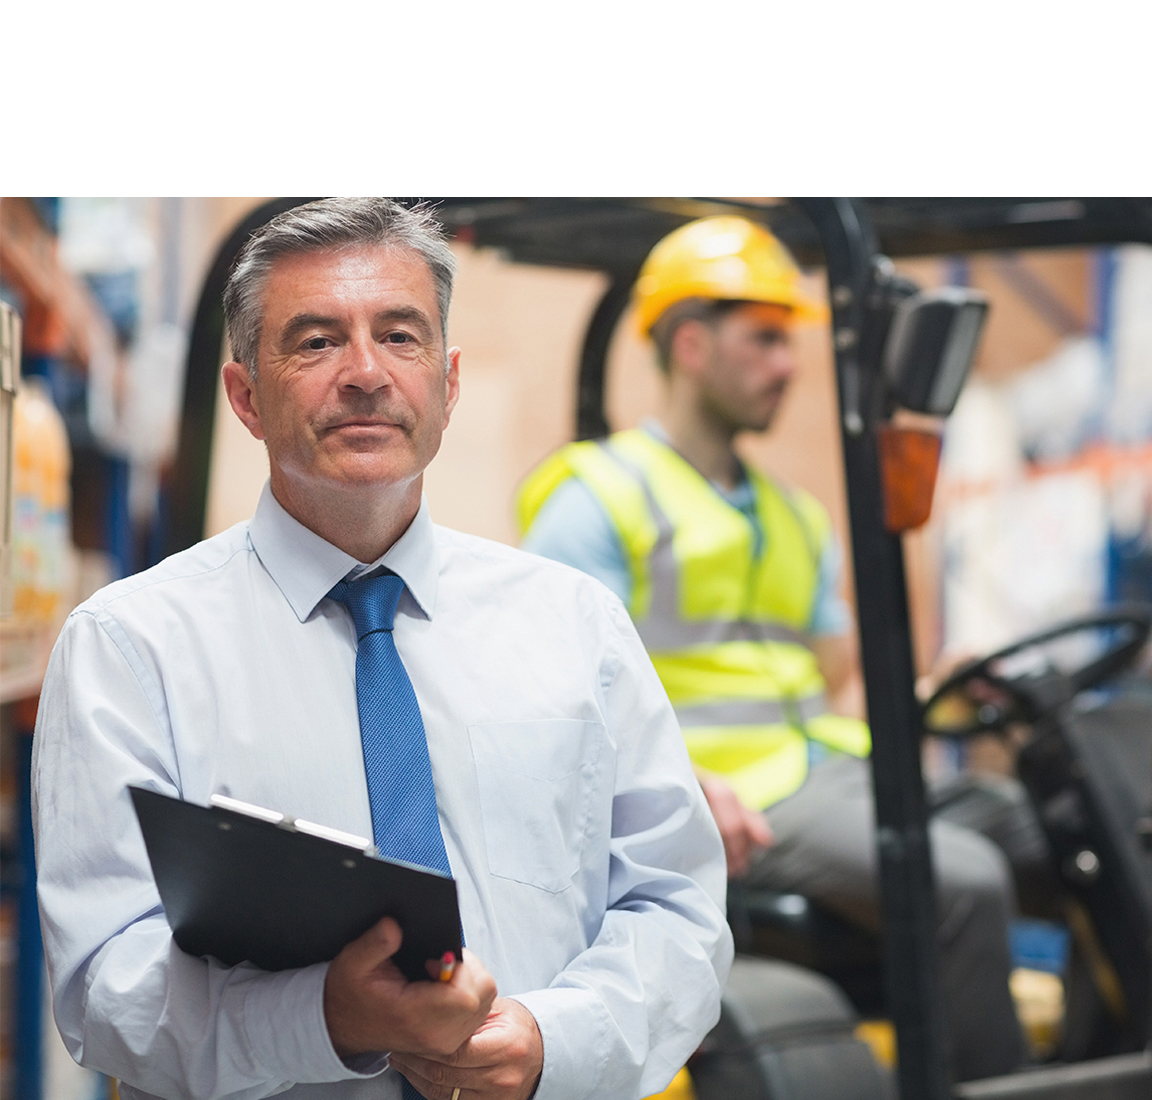 Man with a Clipboard Standing in Front of a Man in a Forklift